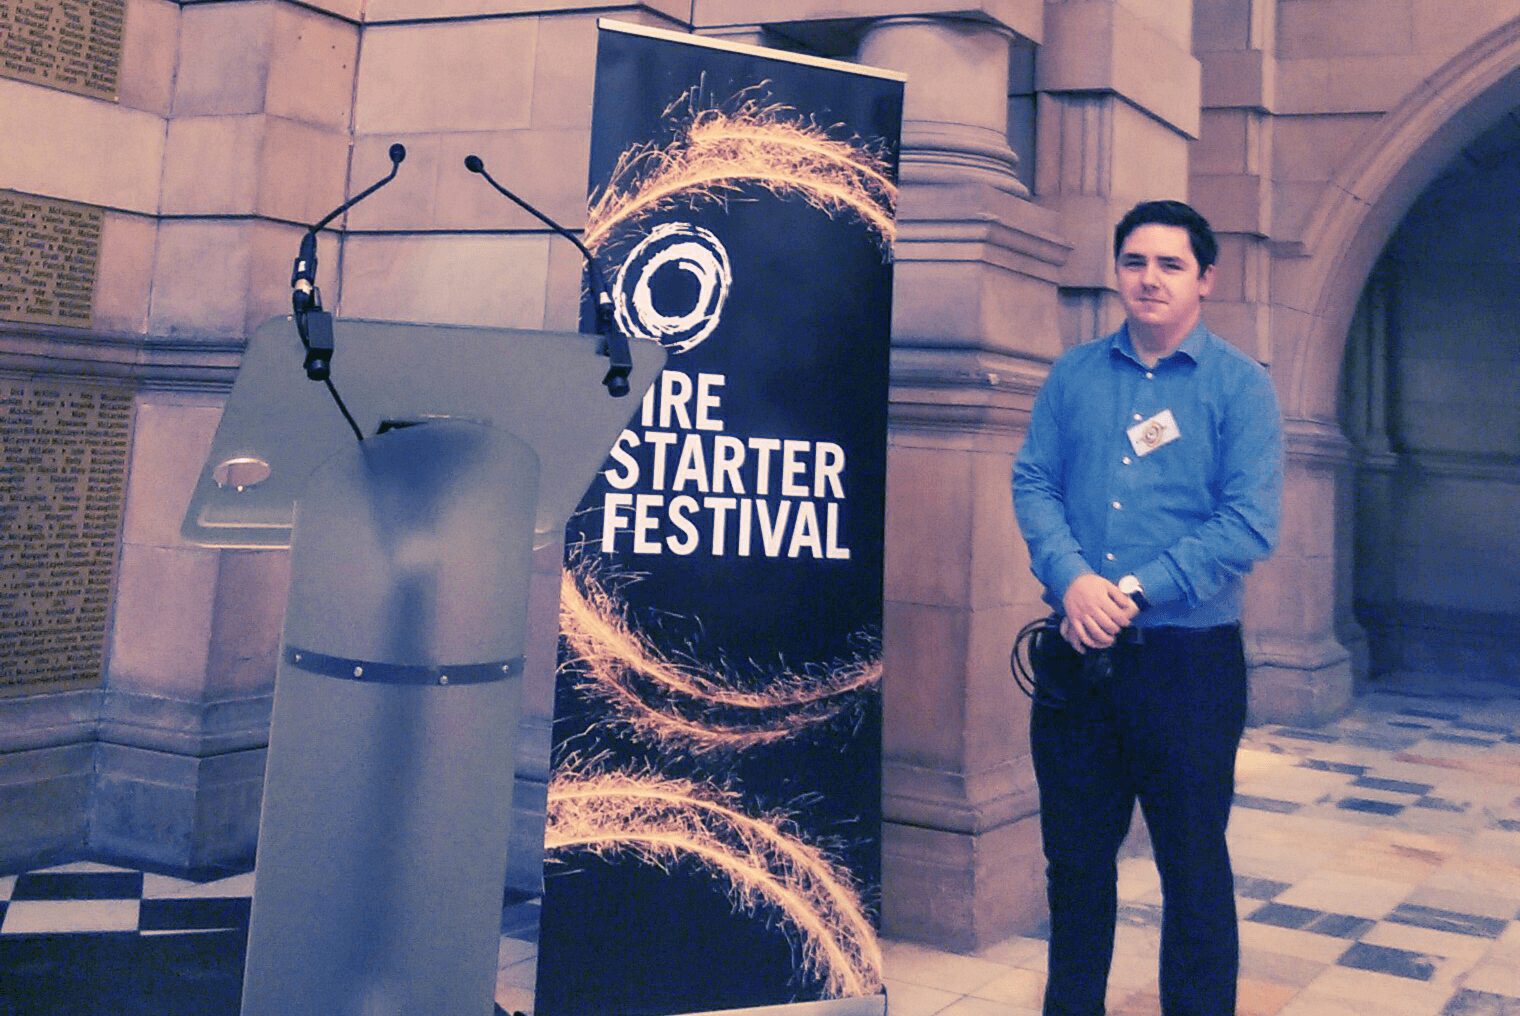 MCR's Liam Shines at Fire Starter Festival – Launched by First Minister